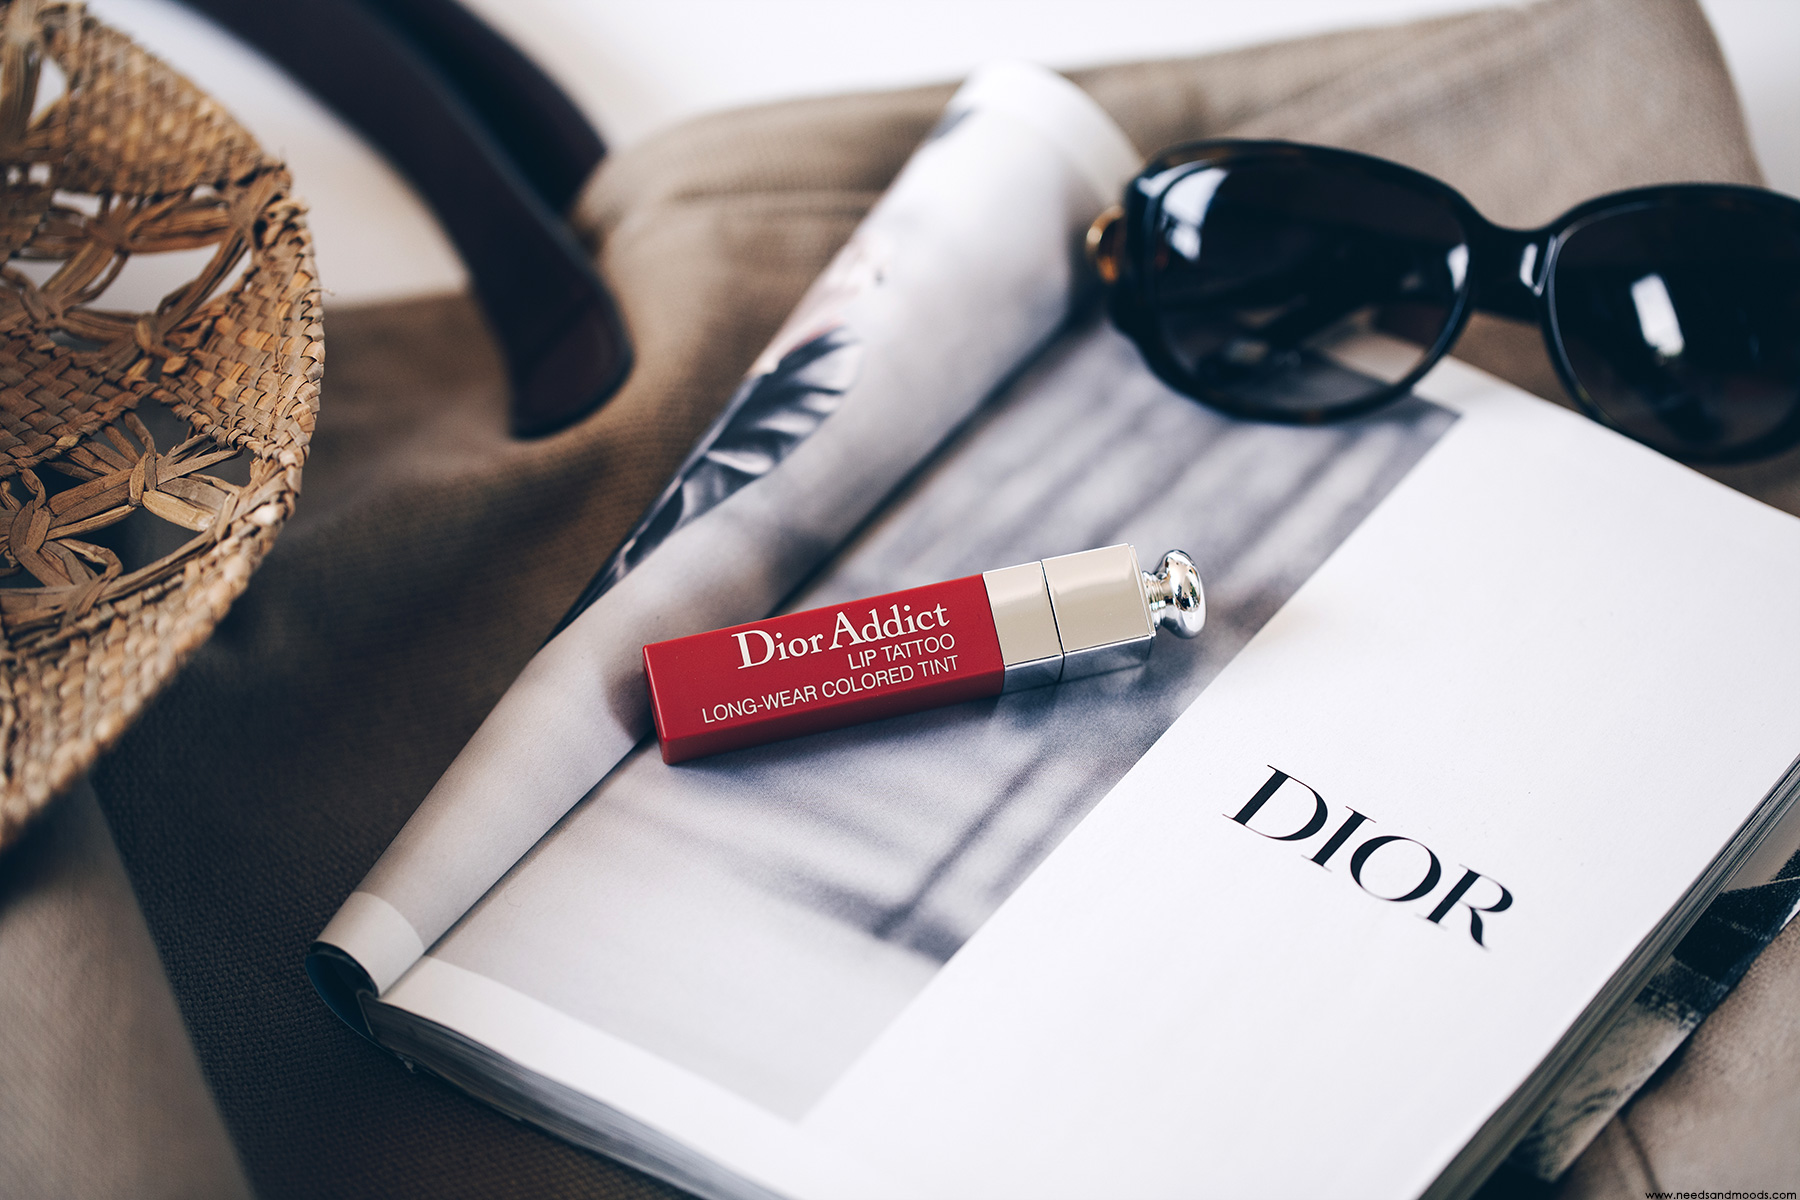 dior addict lip tattoo 541 natural sienna